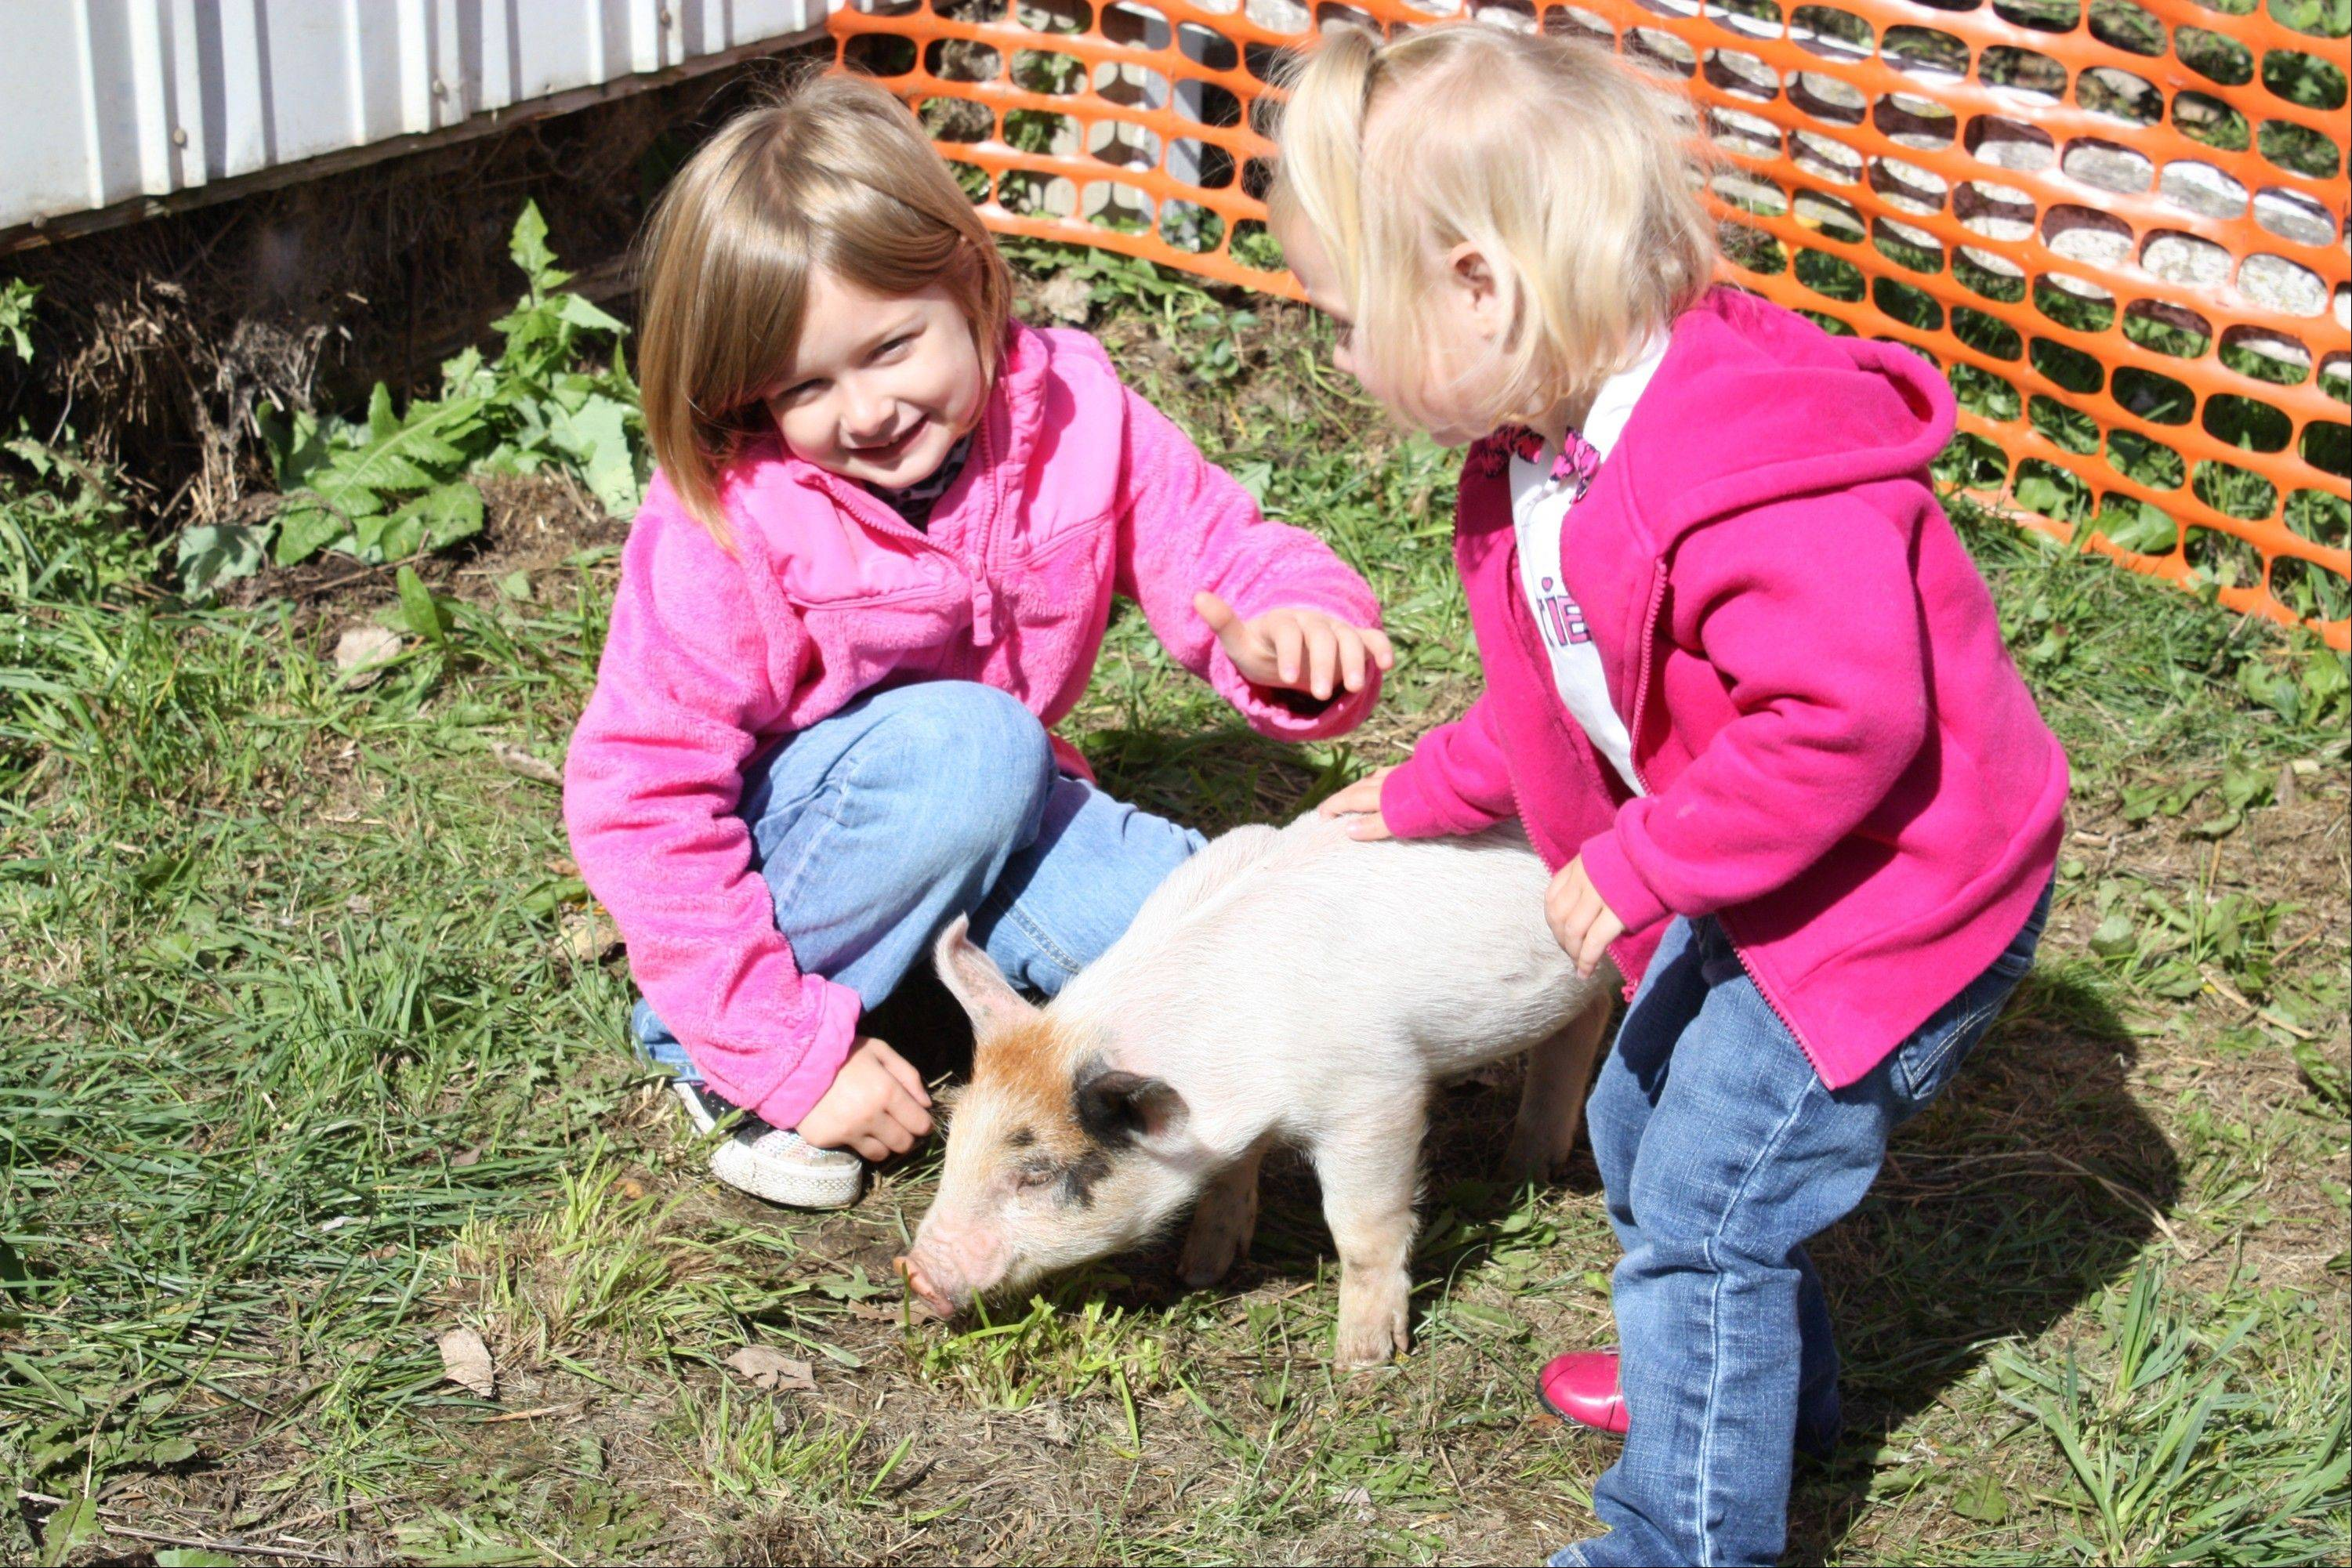 A petting zoon will be part of the family friendly activities at the Palatine Park District's annual Fall Festival.